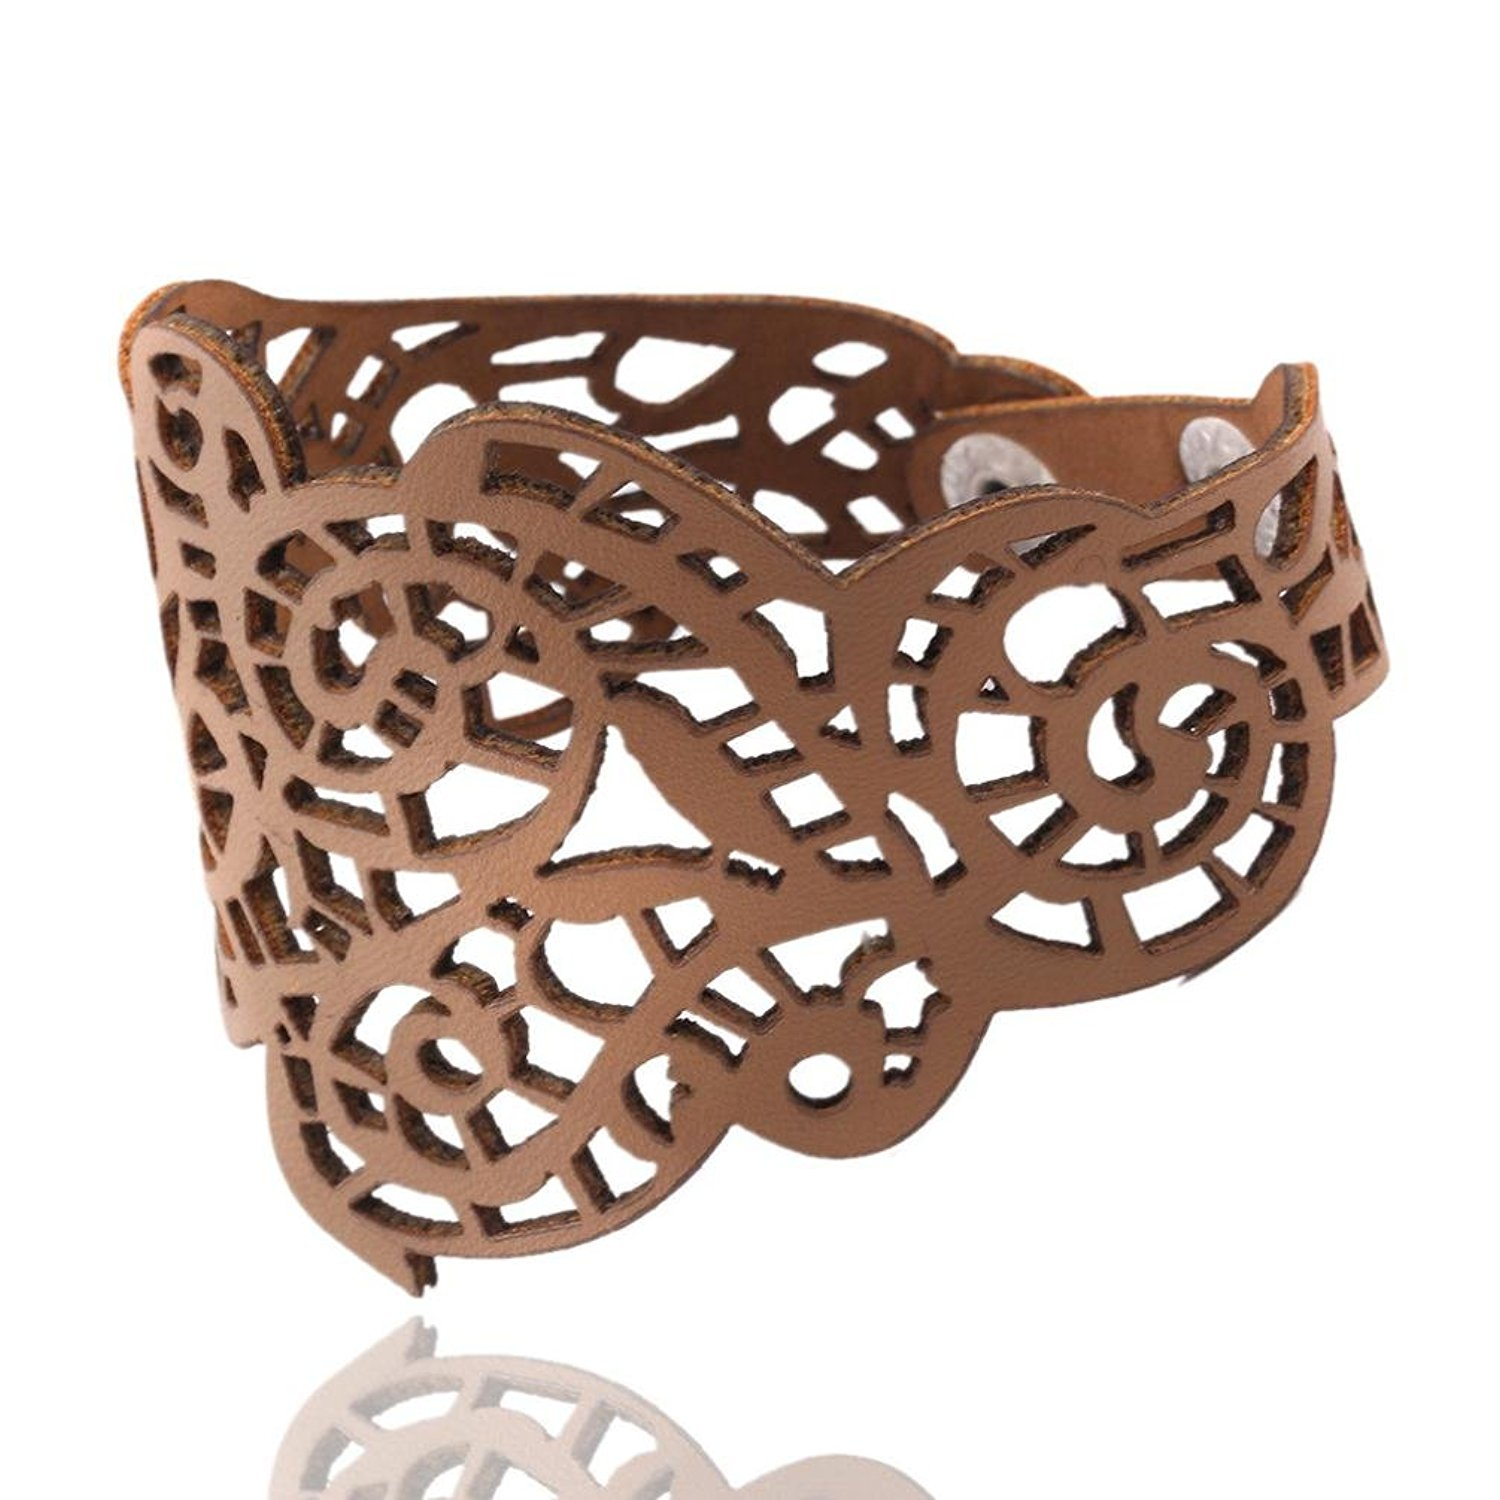 DondPO Vintage Women Punk Style Hollow Out Flower Artificial Leather Wide Bangle Cuff Leather Bracelet